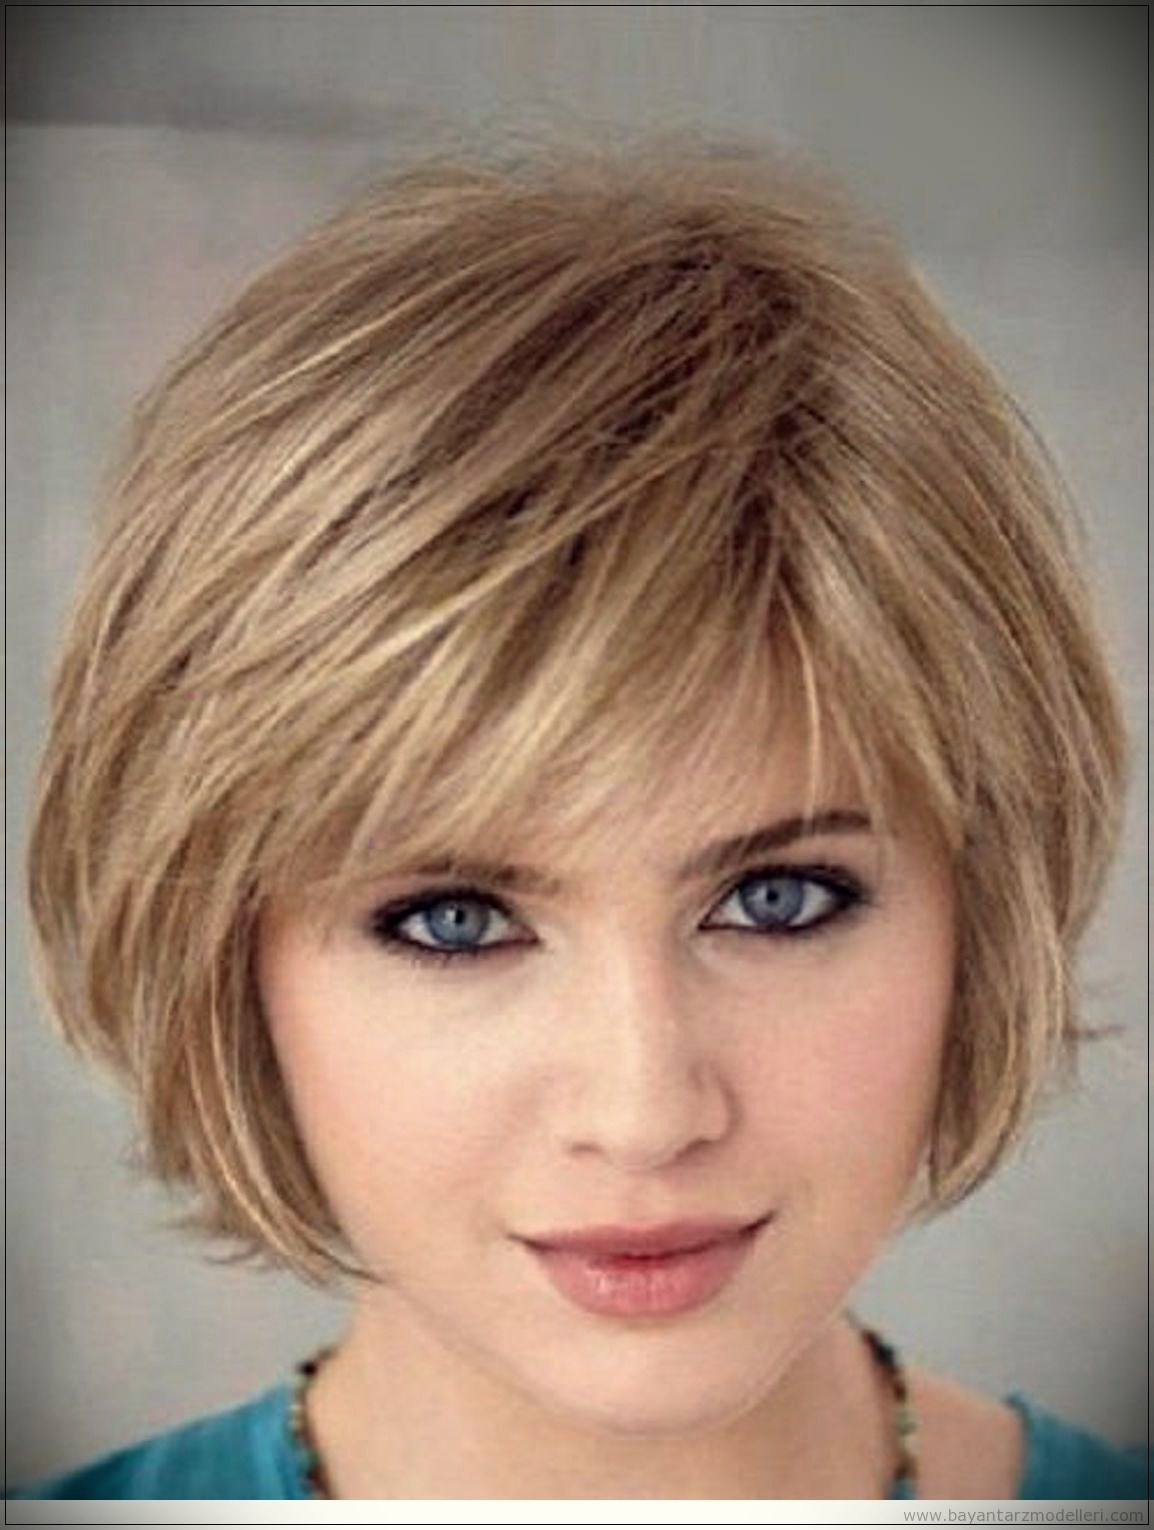 hairstyles for every type of hair texture 6 - Hairstyles for every type of hair texture